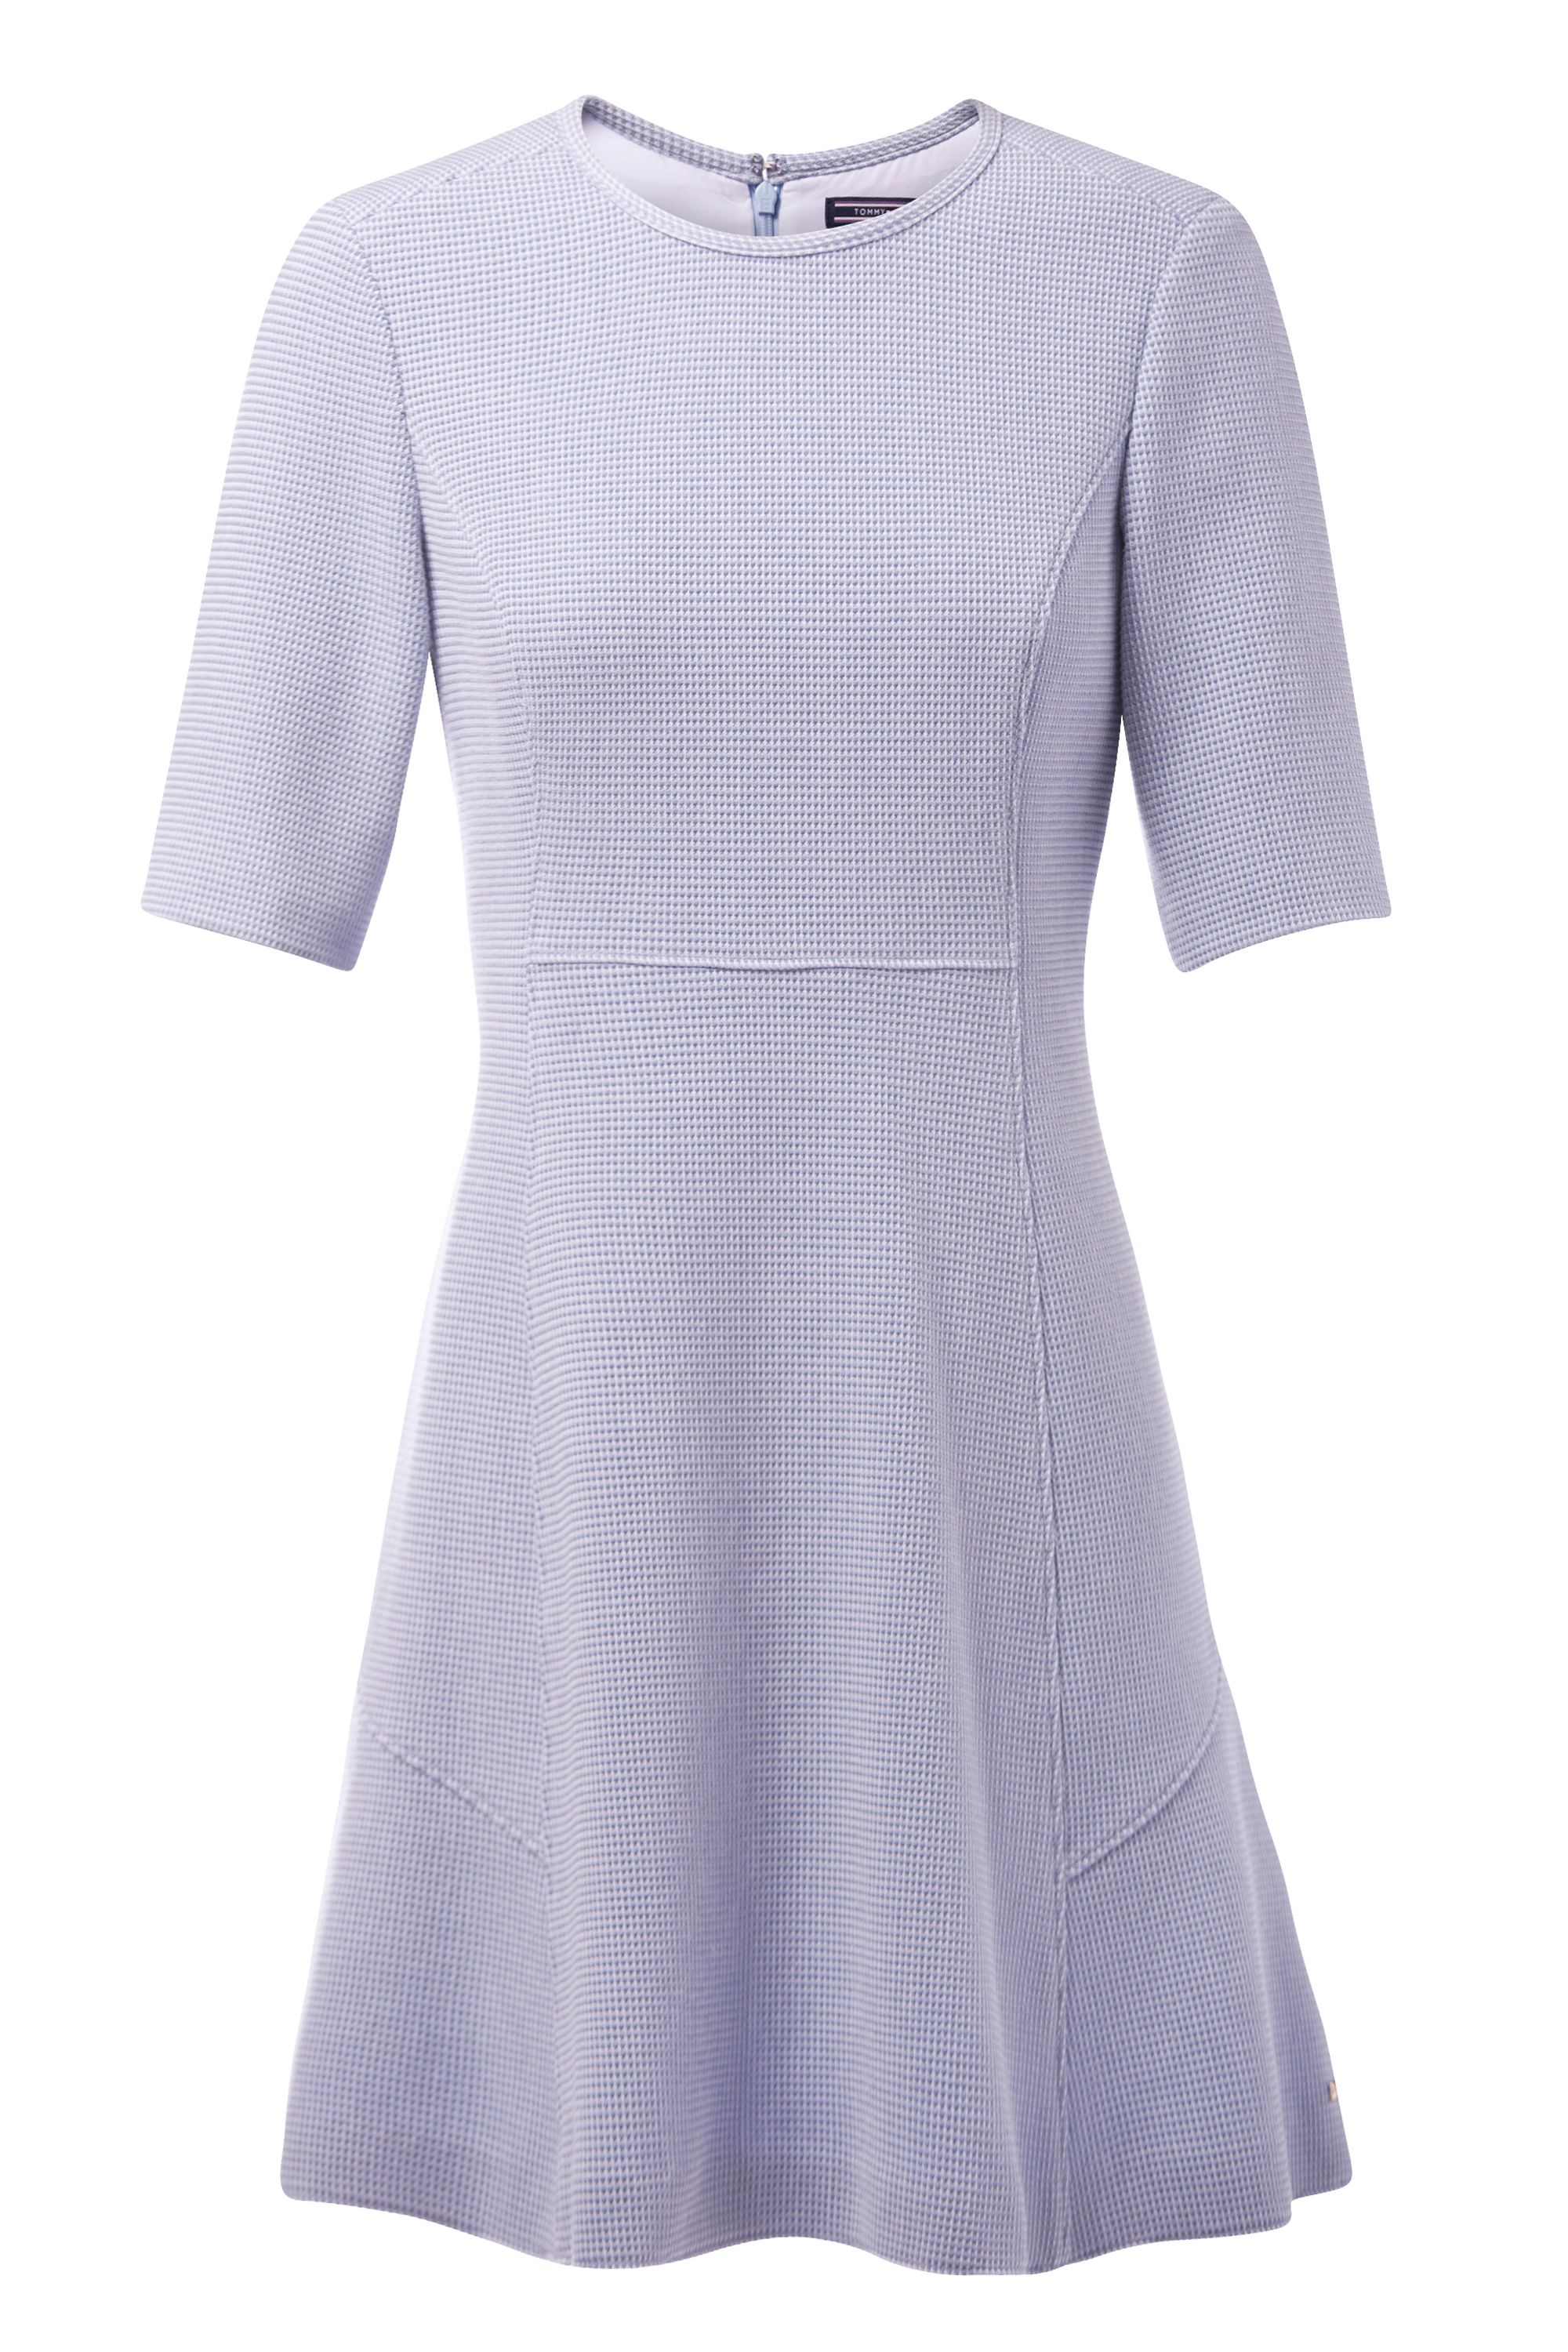 Tommy Hilfiger Terry Dress, Blue